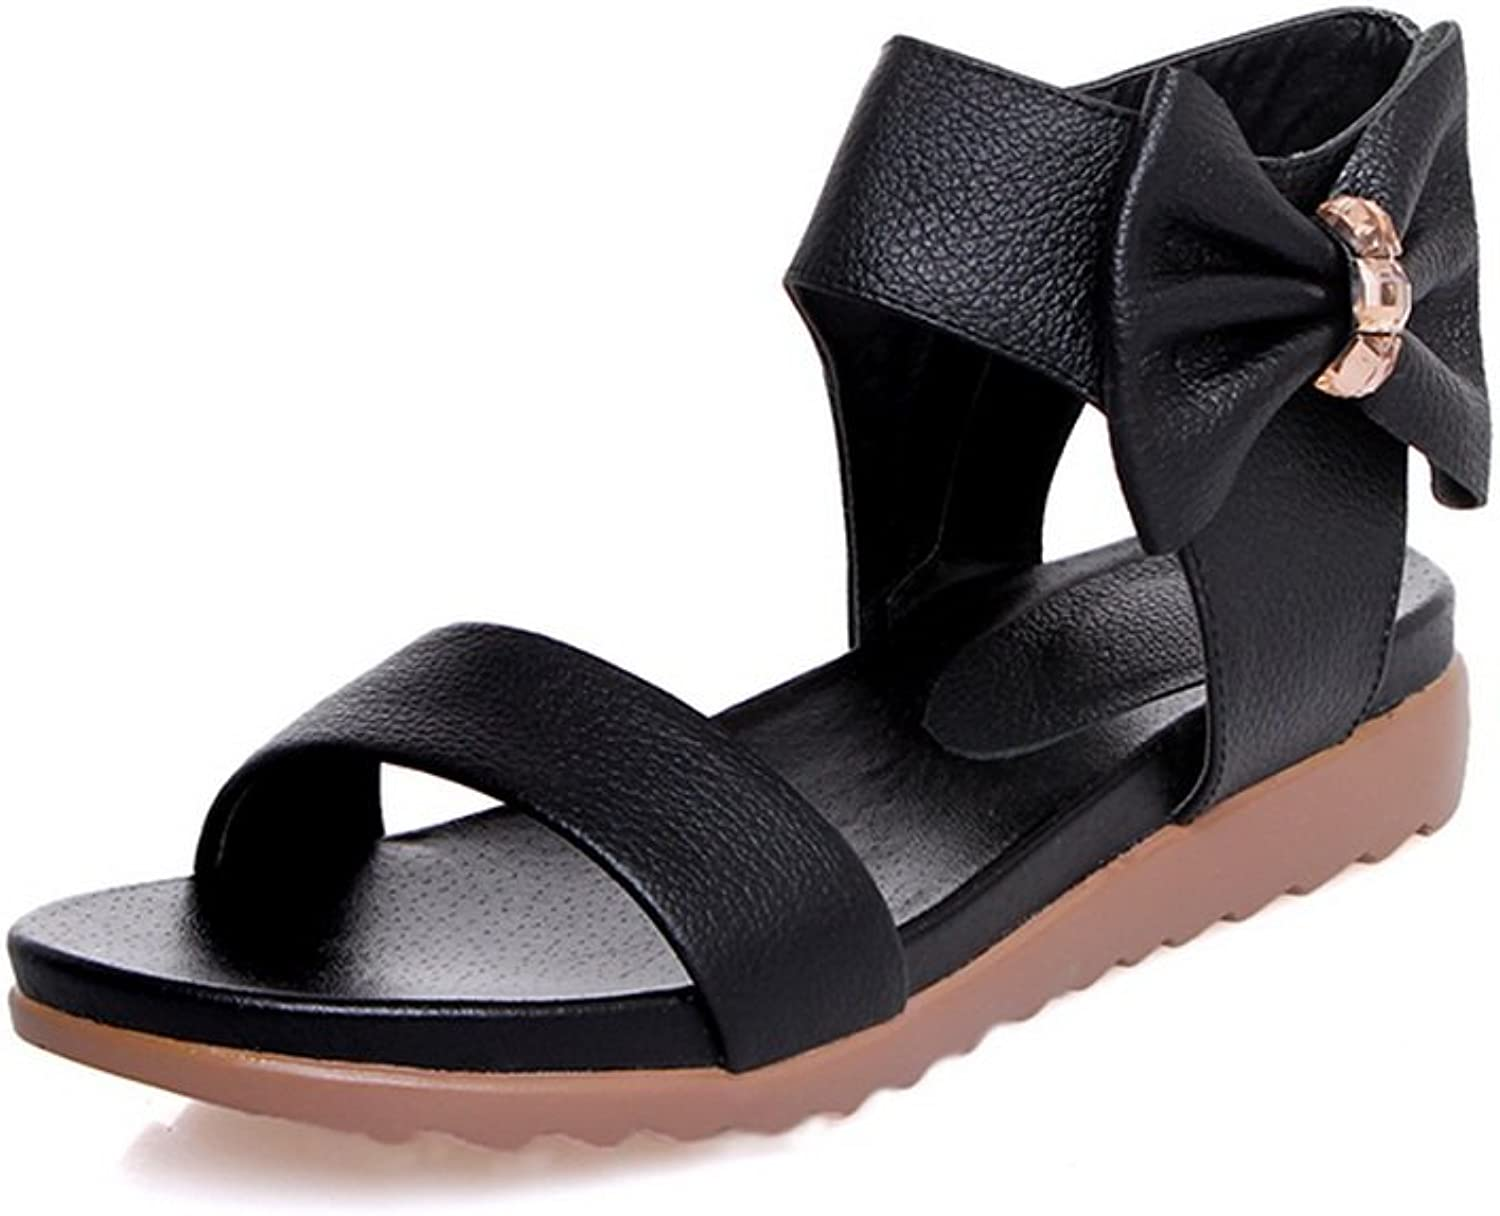 Ladola Womens Metal Buckles Wedges Hollow Out Urethane Sandals DIU00545